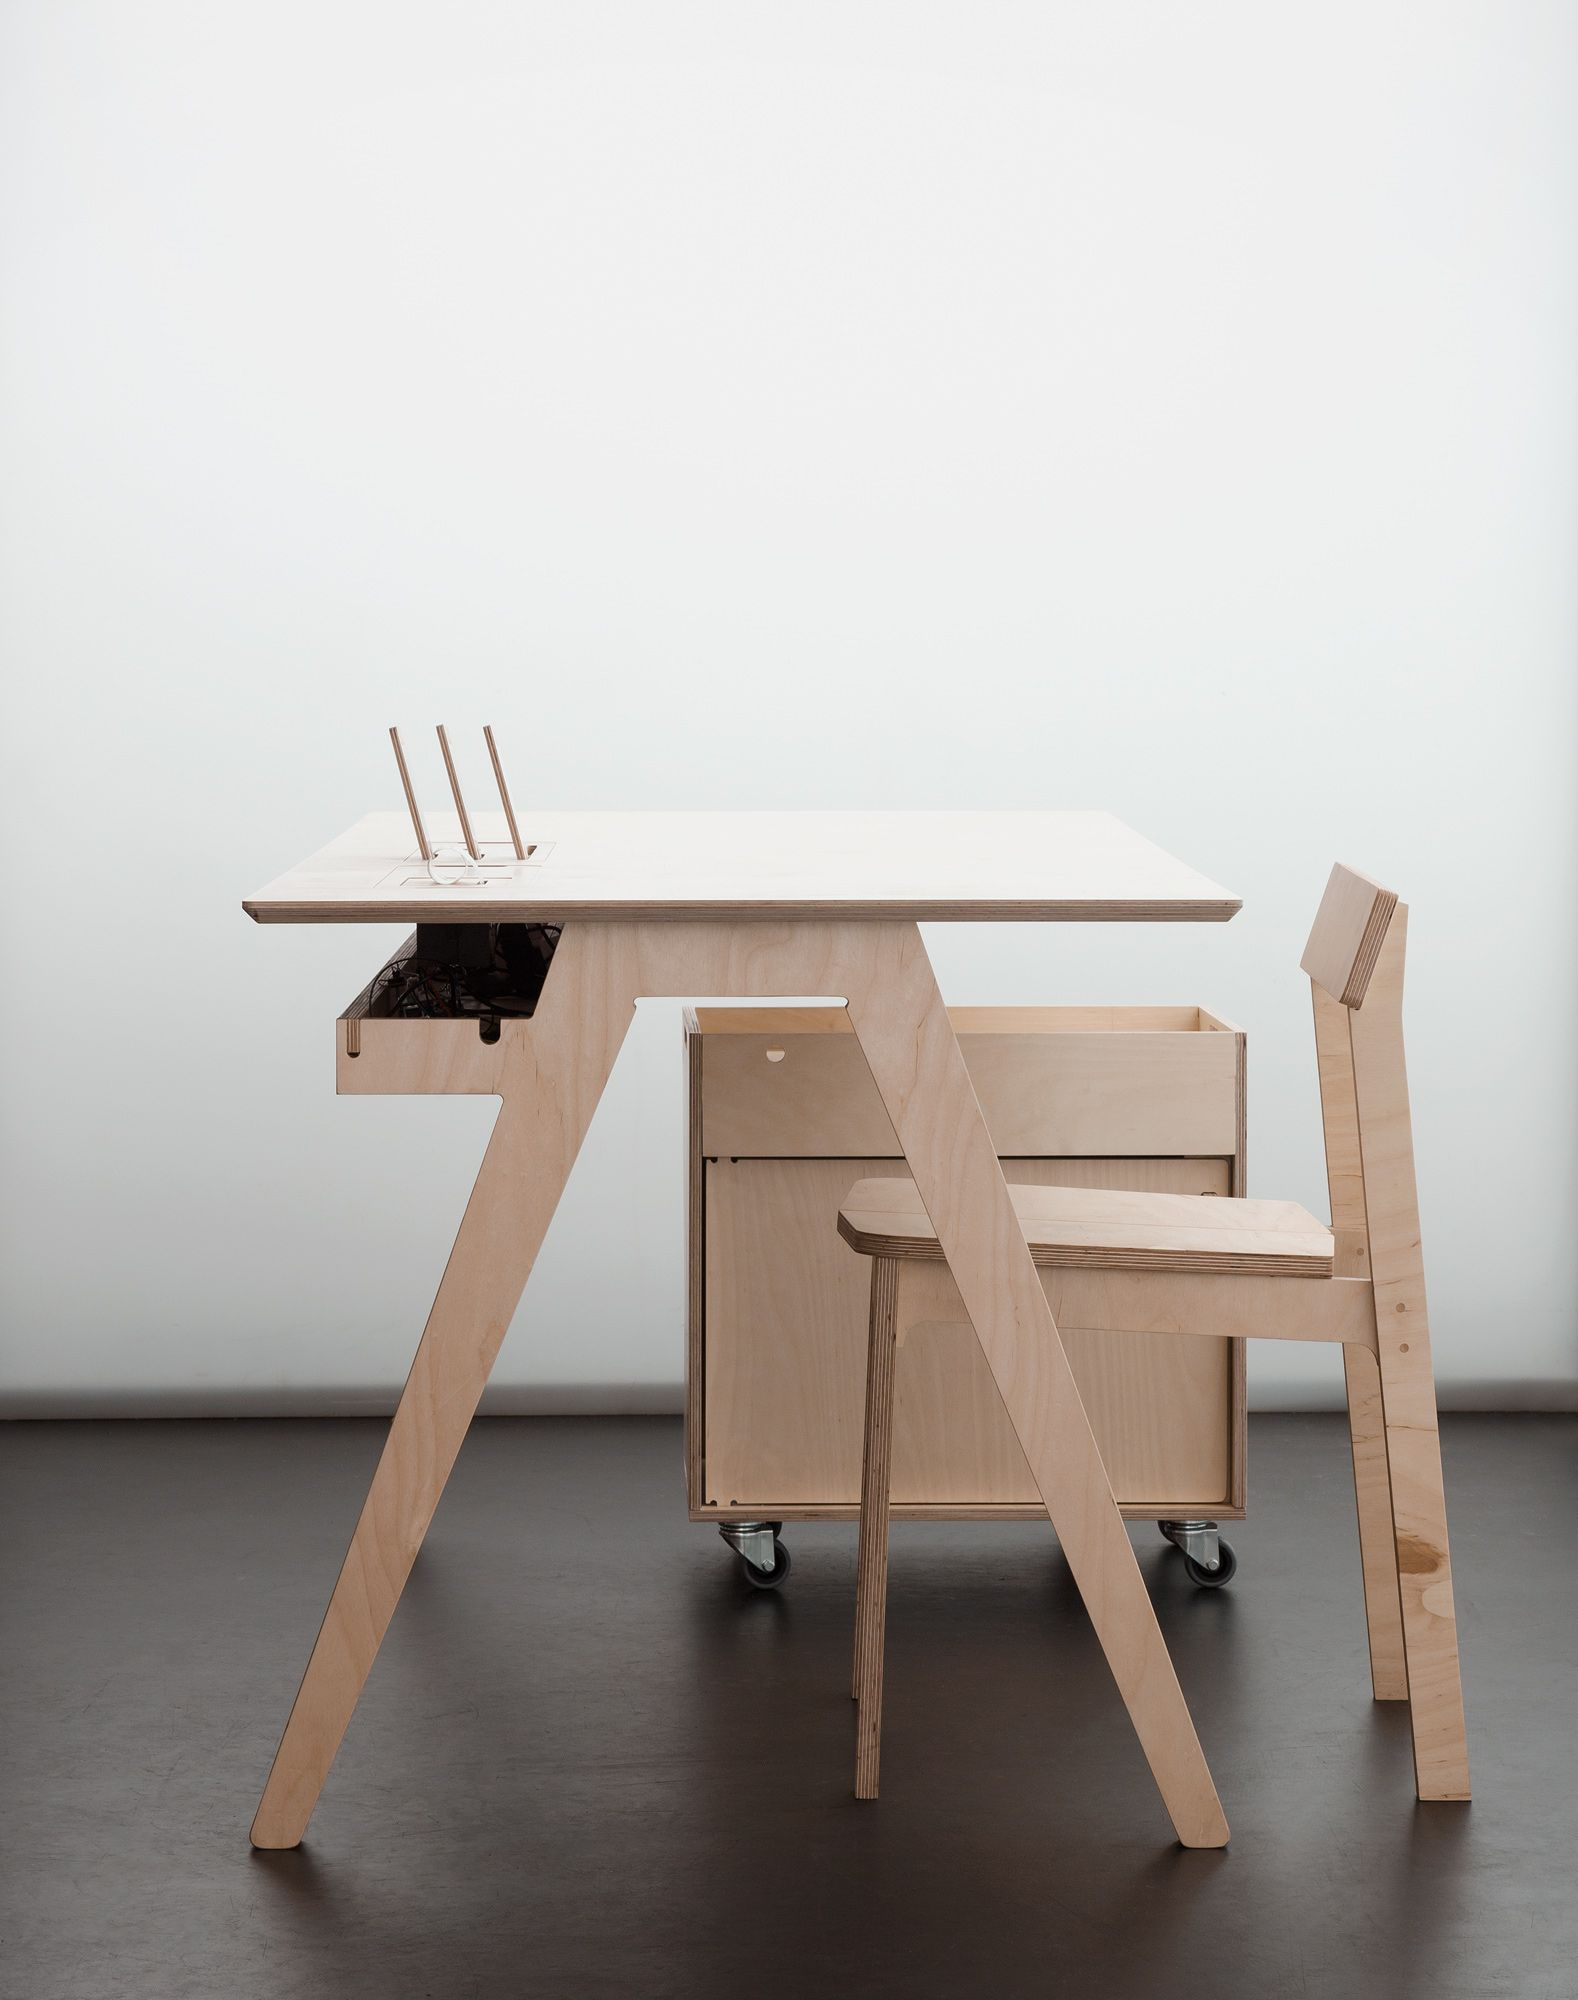 Furniture | Plywood | Furniture, Plywood furniture, Plywood desk